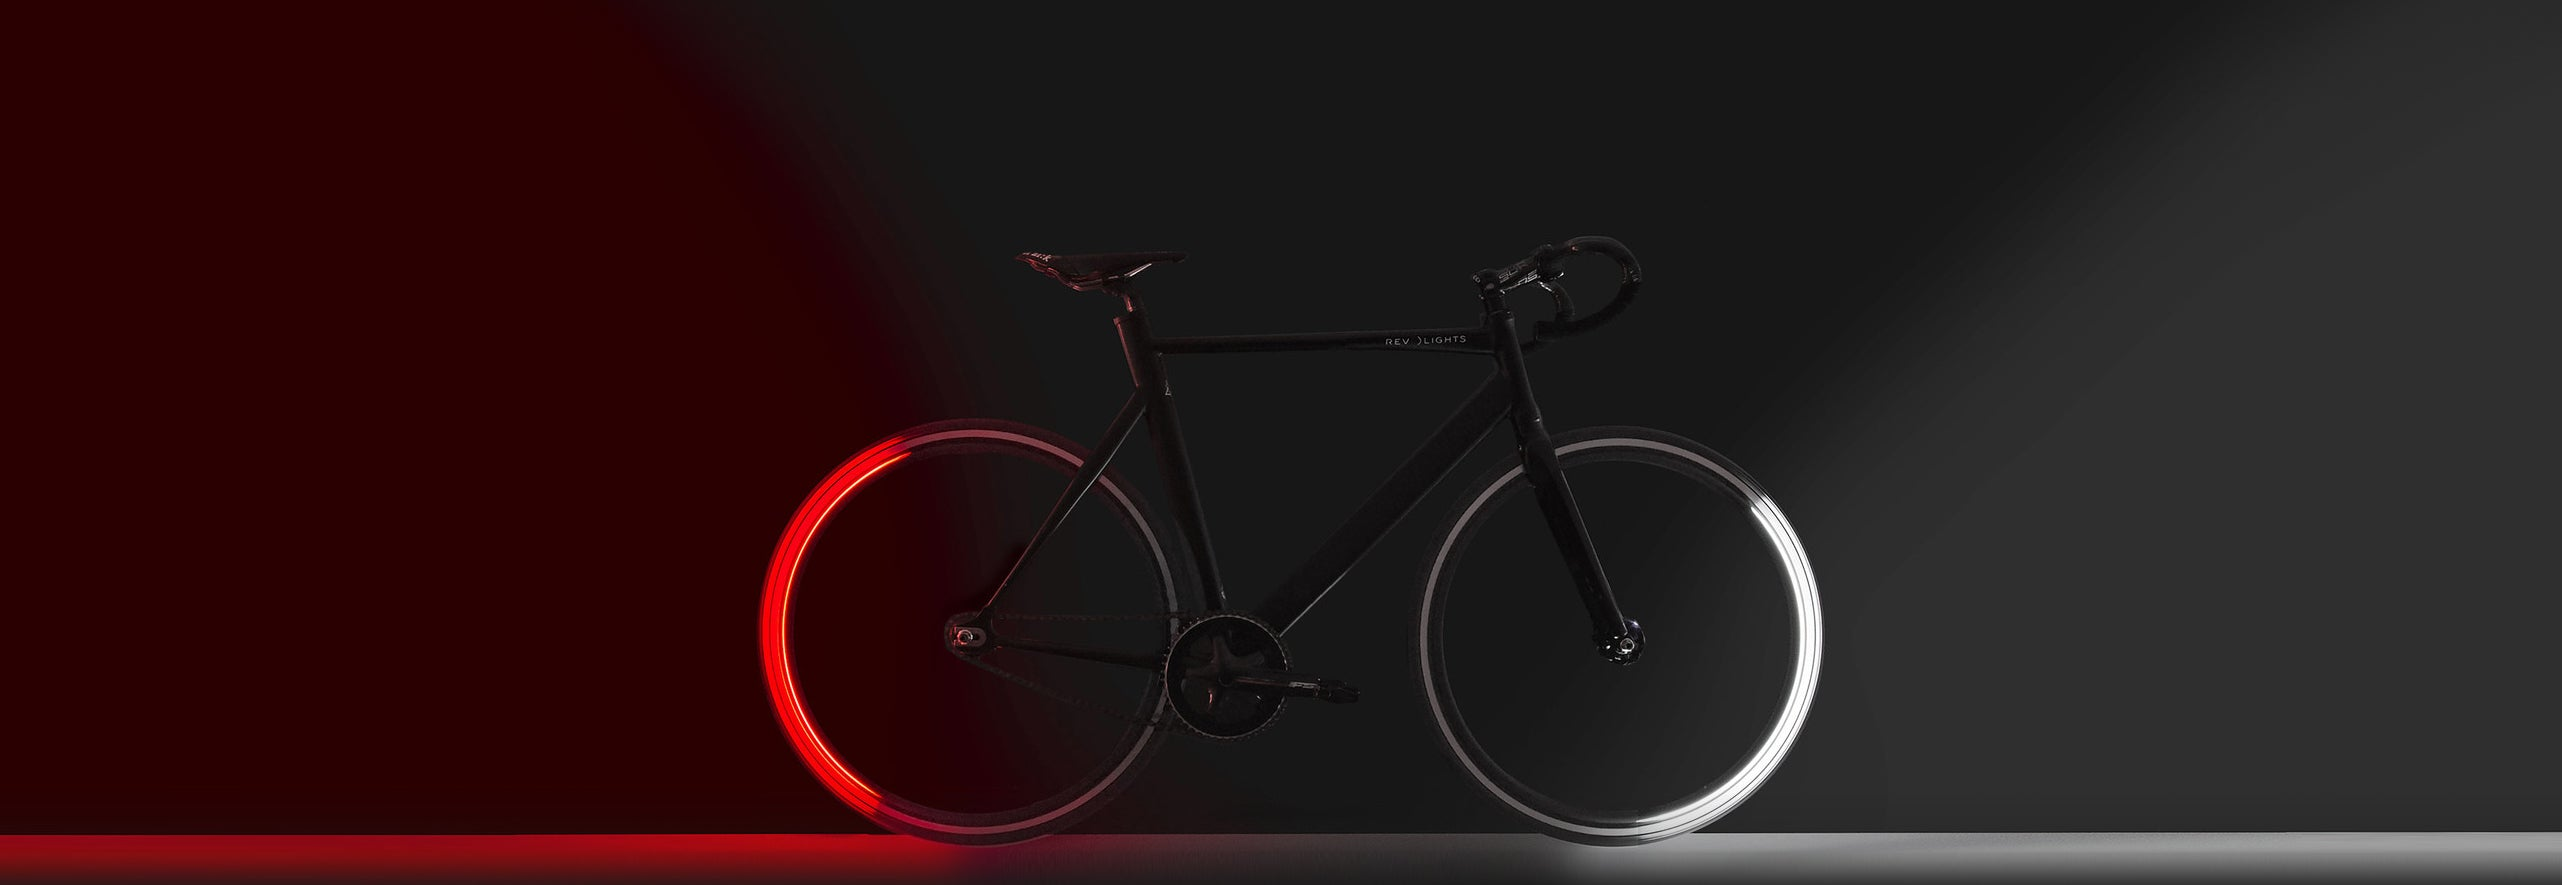 The Best bike lighting system in the world. & Revolights Bicycle Lighting System. The Future of Bicycle Safety ... azcodes.com